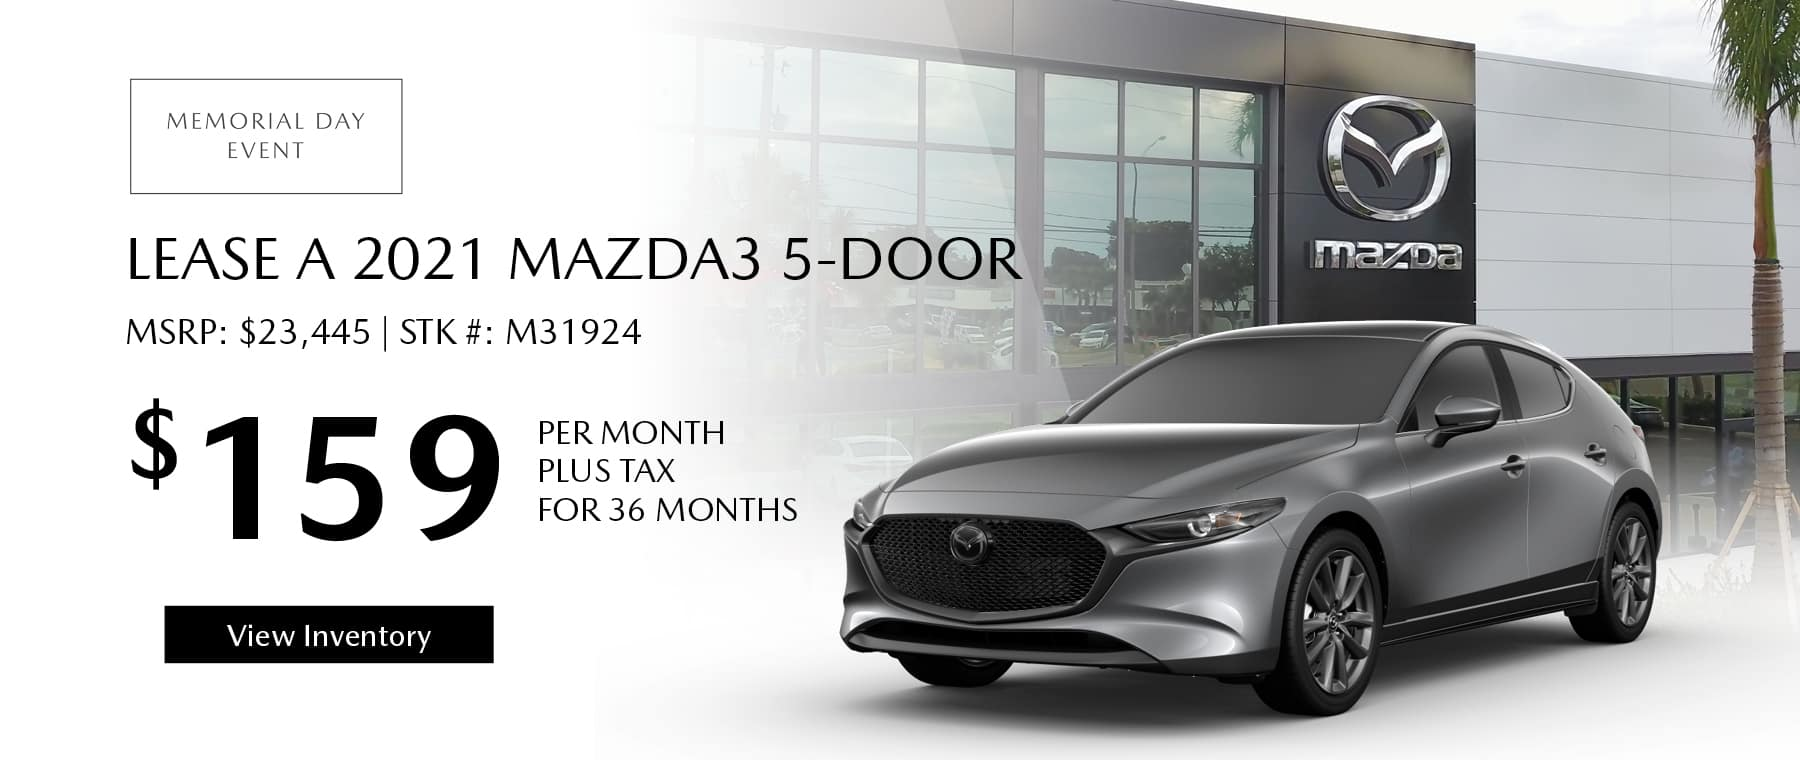 Lease the 2021 Mazda3 hatchback for $159 per month, plus tax for 36 months. Click or tap here to view our inventory.